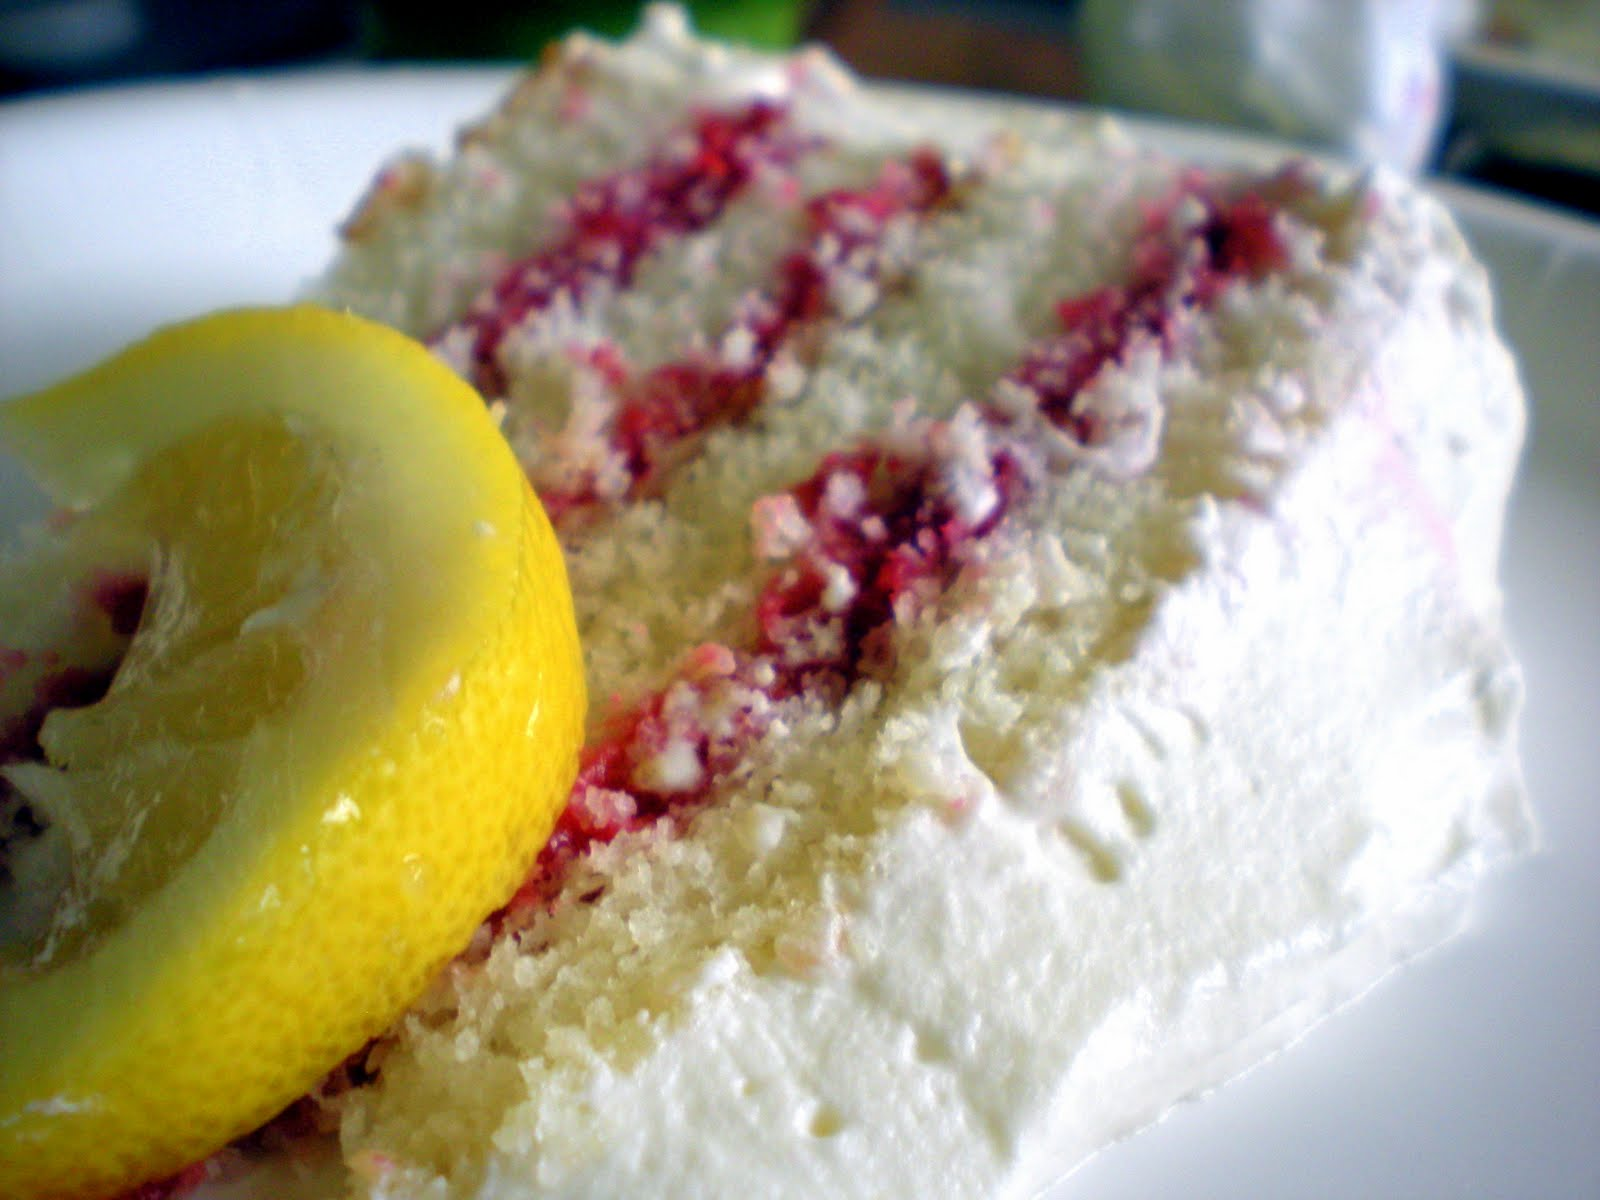 ... cakes crab cakes with lemon aioli raspberry lemon and lime heart cake